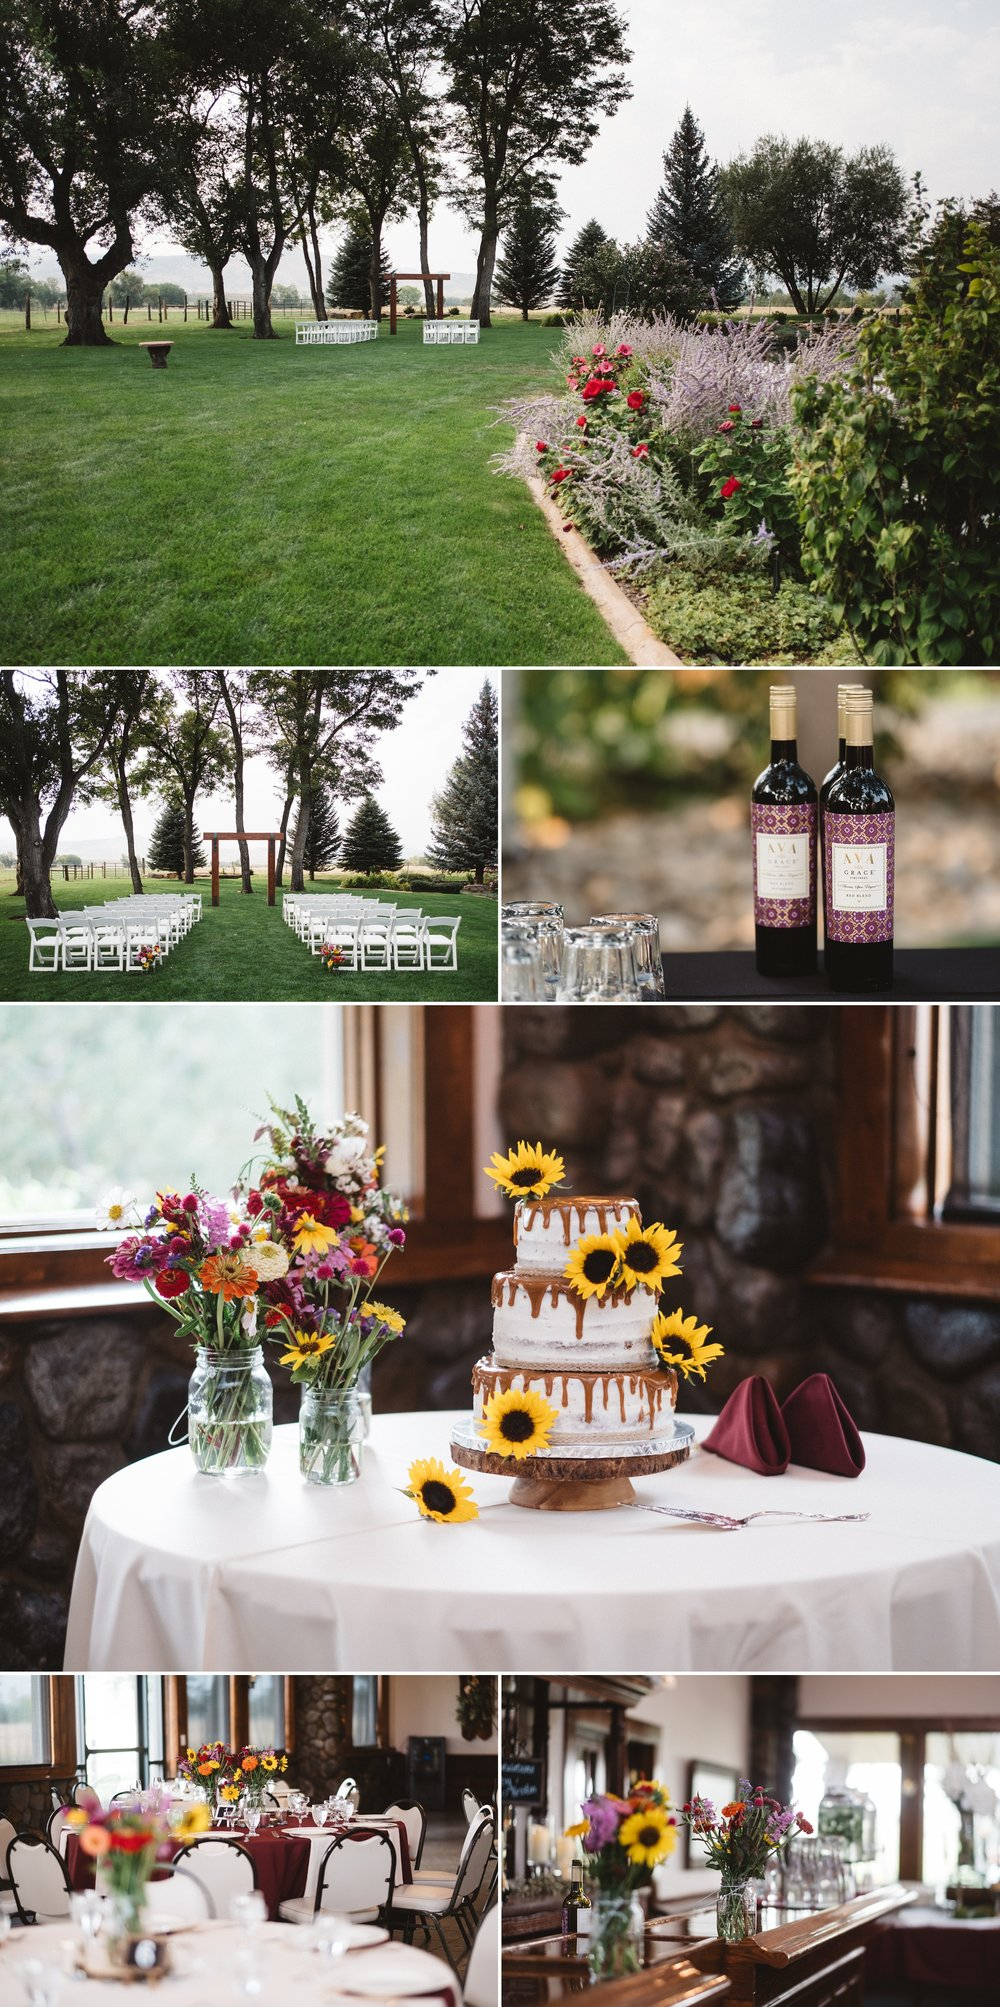 Ceremony details at the schupe homestead in Colorado